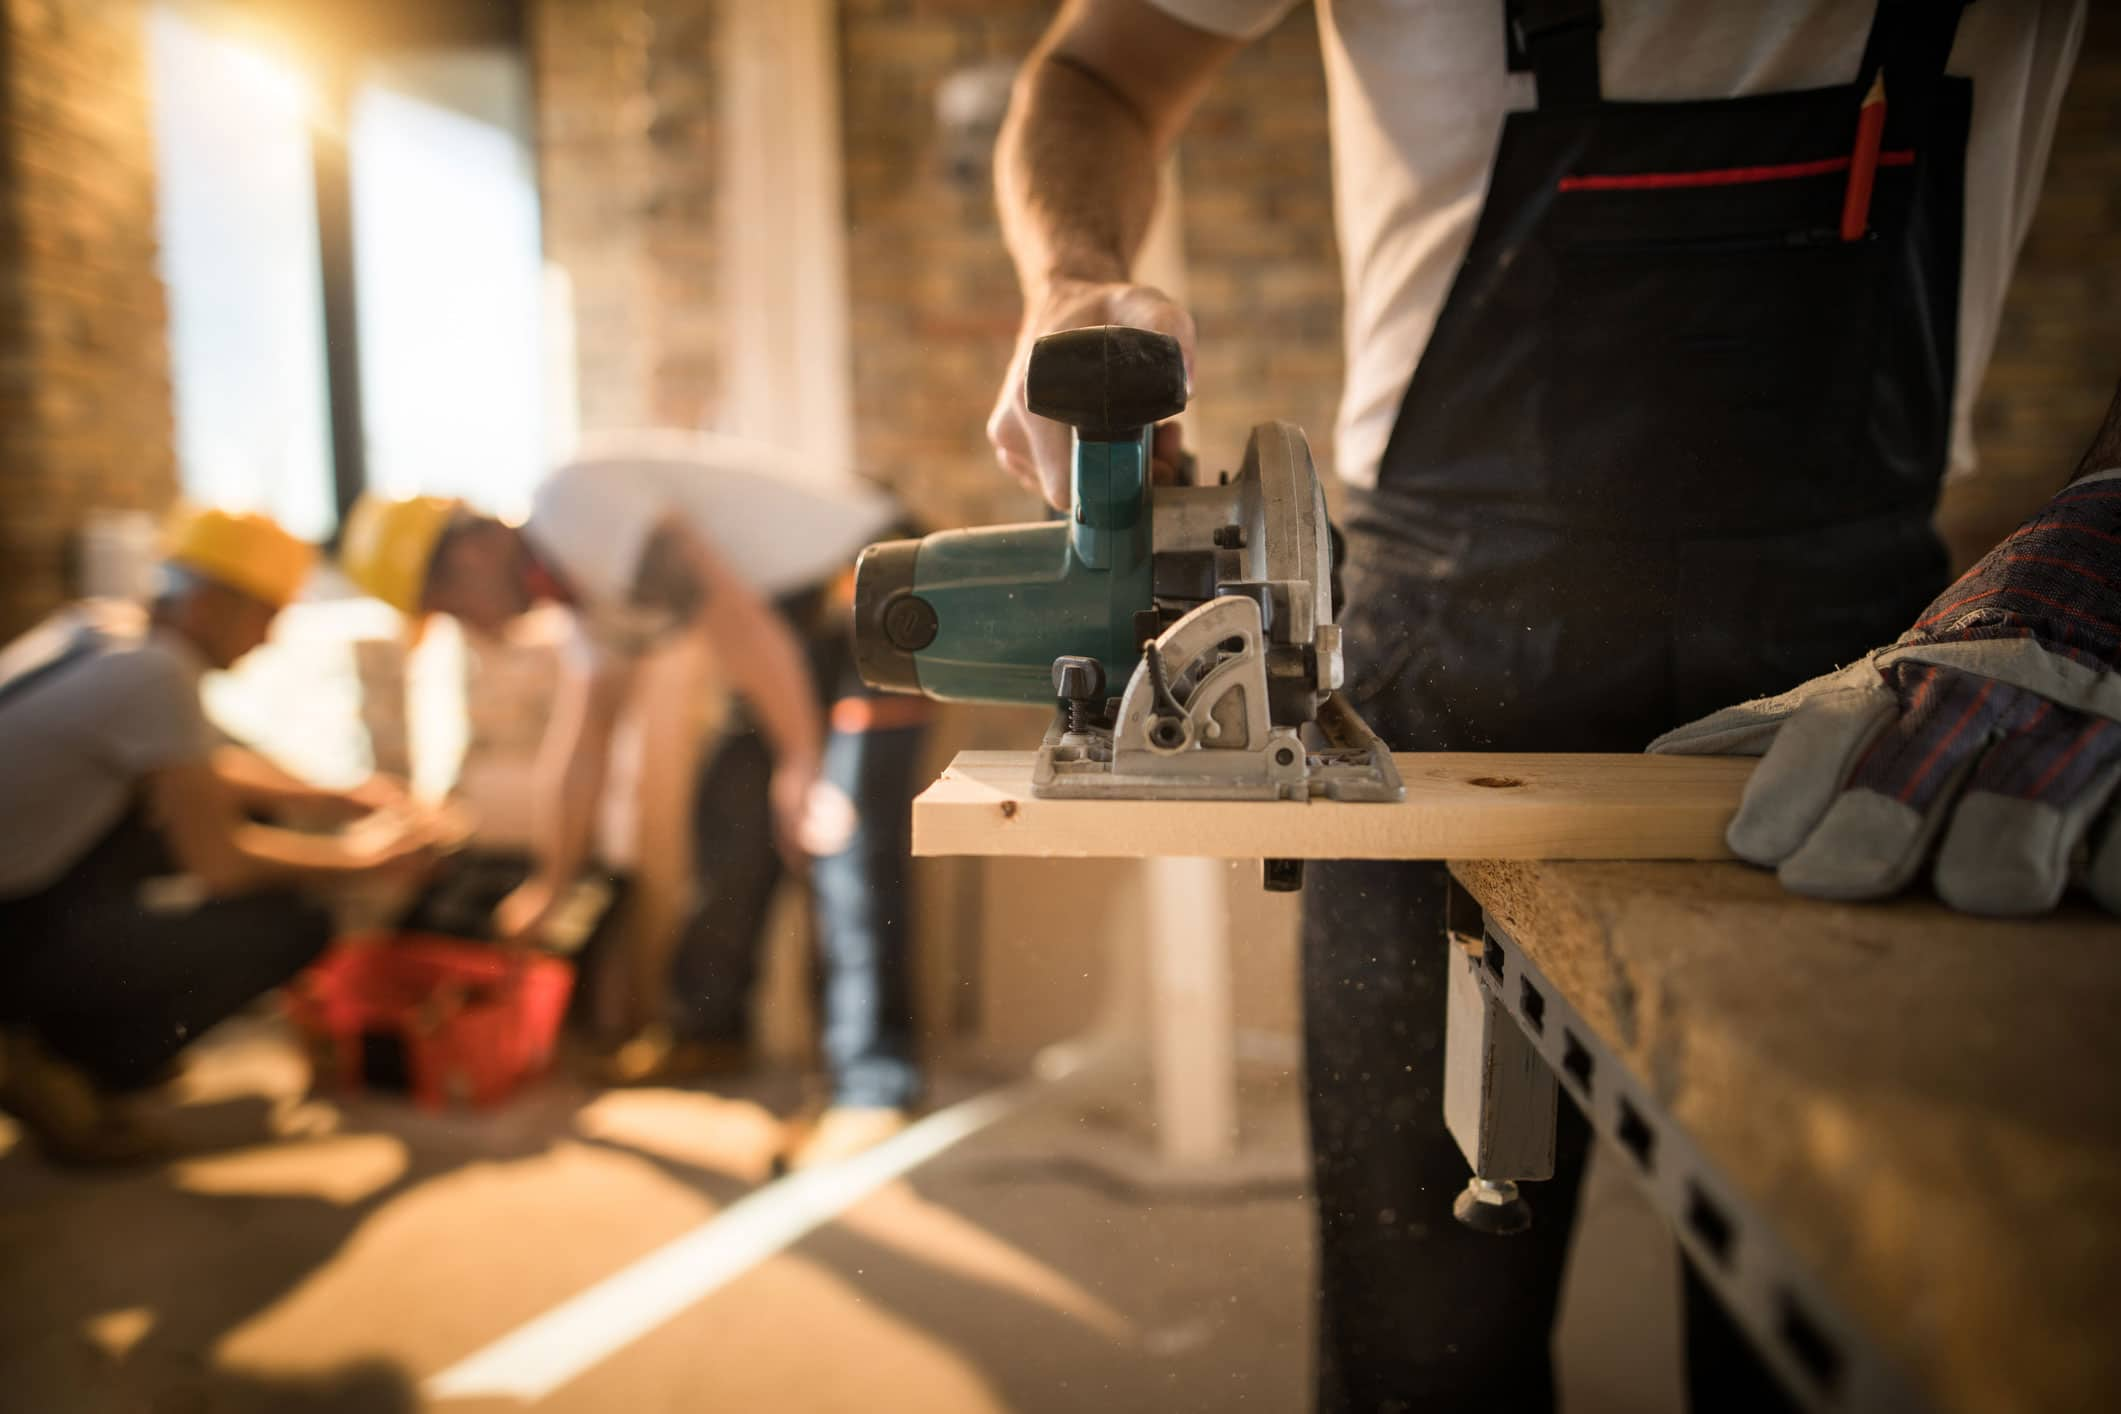 Get Superb Services With Handyman In San Antonio, Tx At Unparalleled Prices